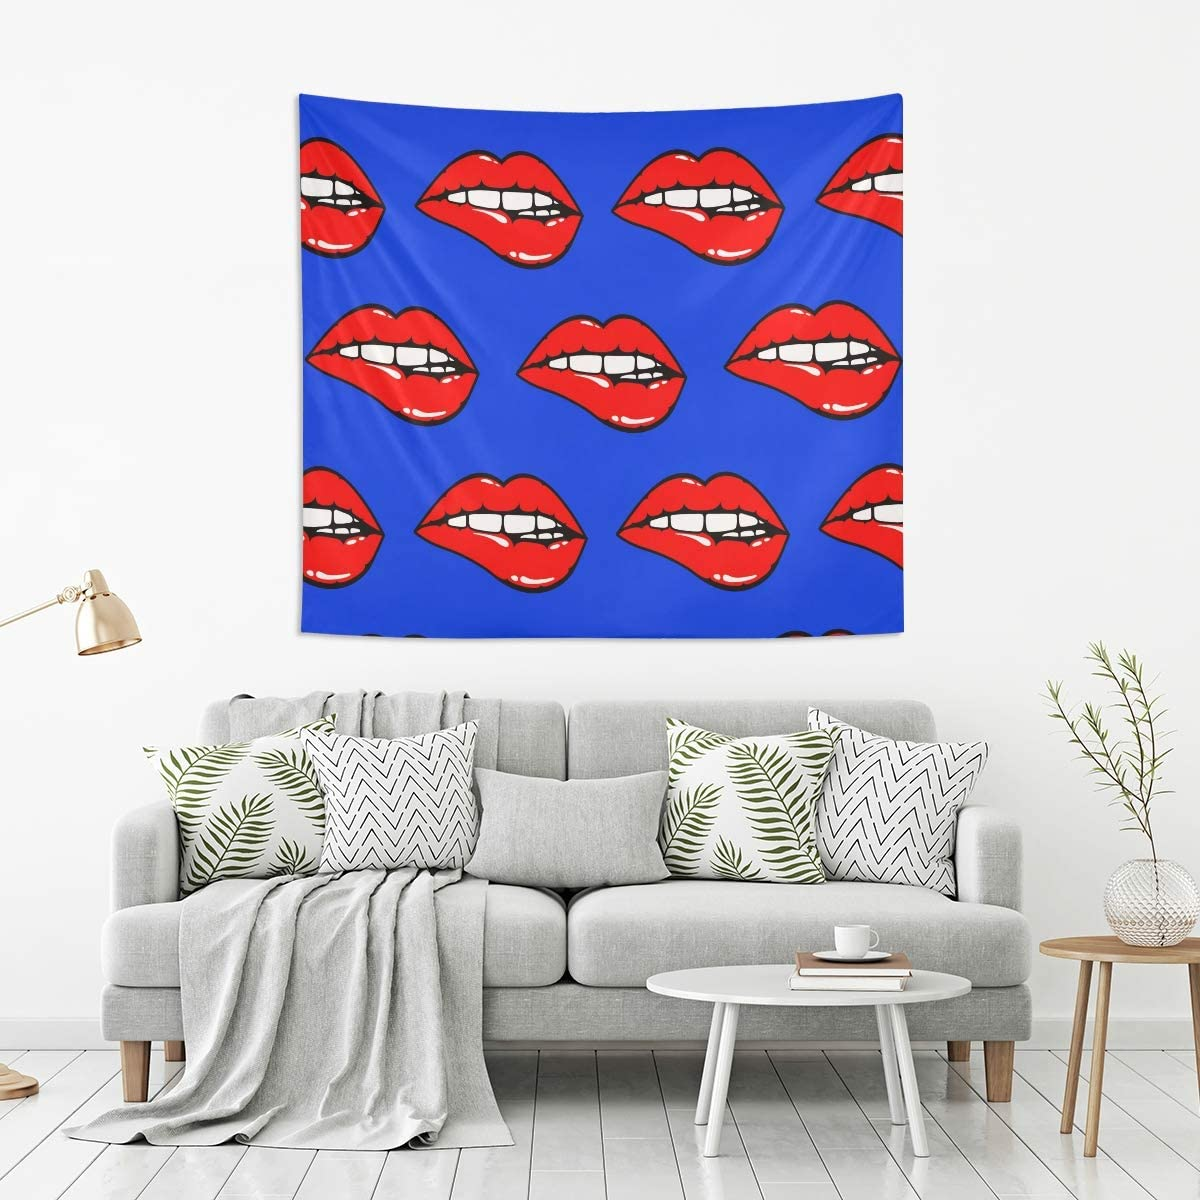 Amazon Com Housingmart Wall Hanging Tapestry Sexy Women Lips Print Tapestries Wall Blanket Tapestry Wall Art Decor For Living Room Bedroom Kitchen Dorm 80x60 Inch Home Kitchen